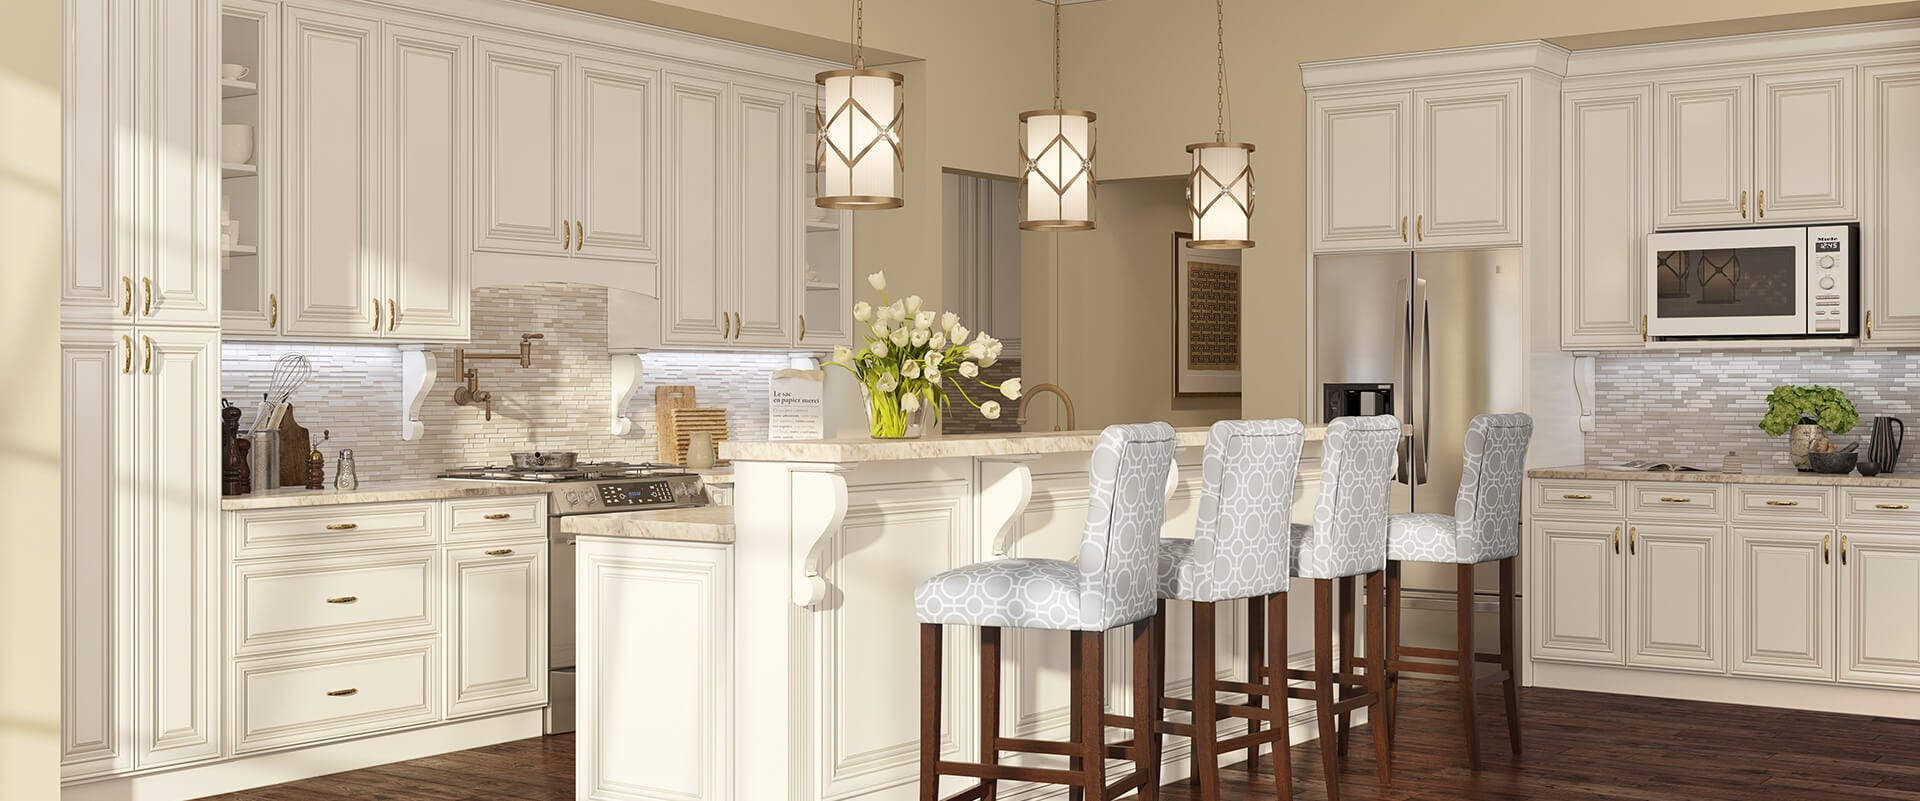 Traditional Kitchen Cabinets European Style Kitchen Cabinets Prime Cabinetry